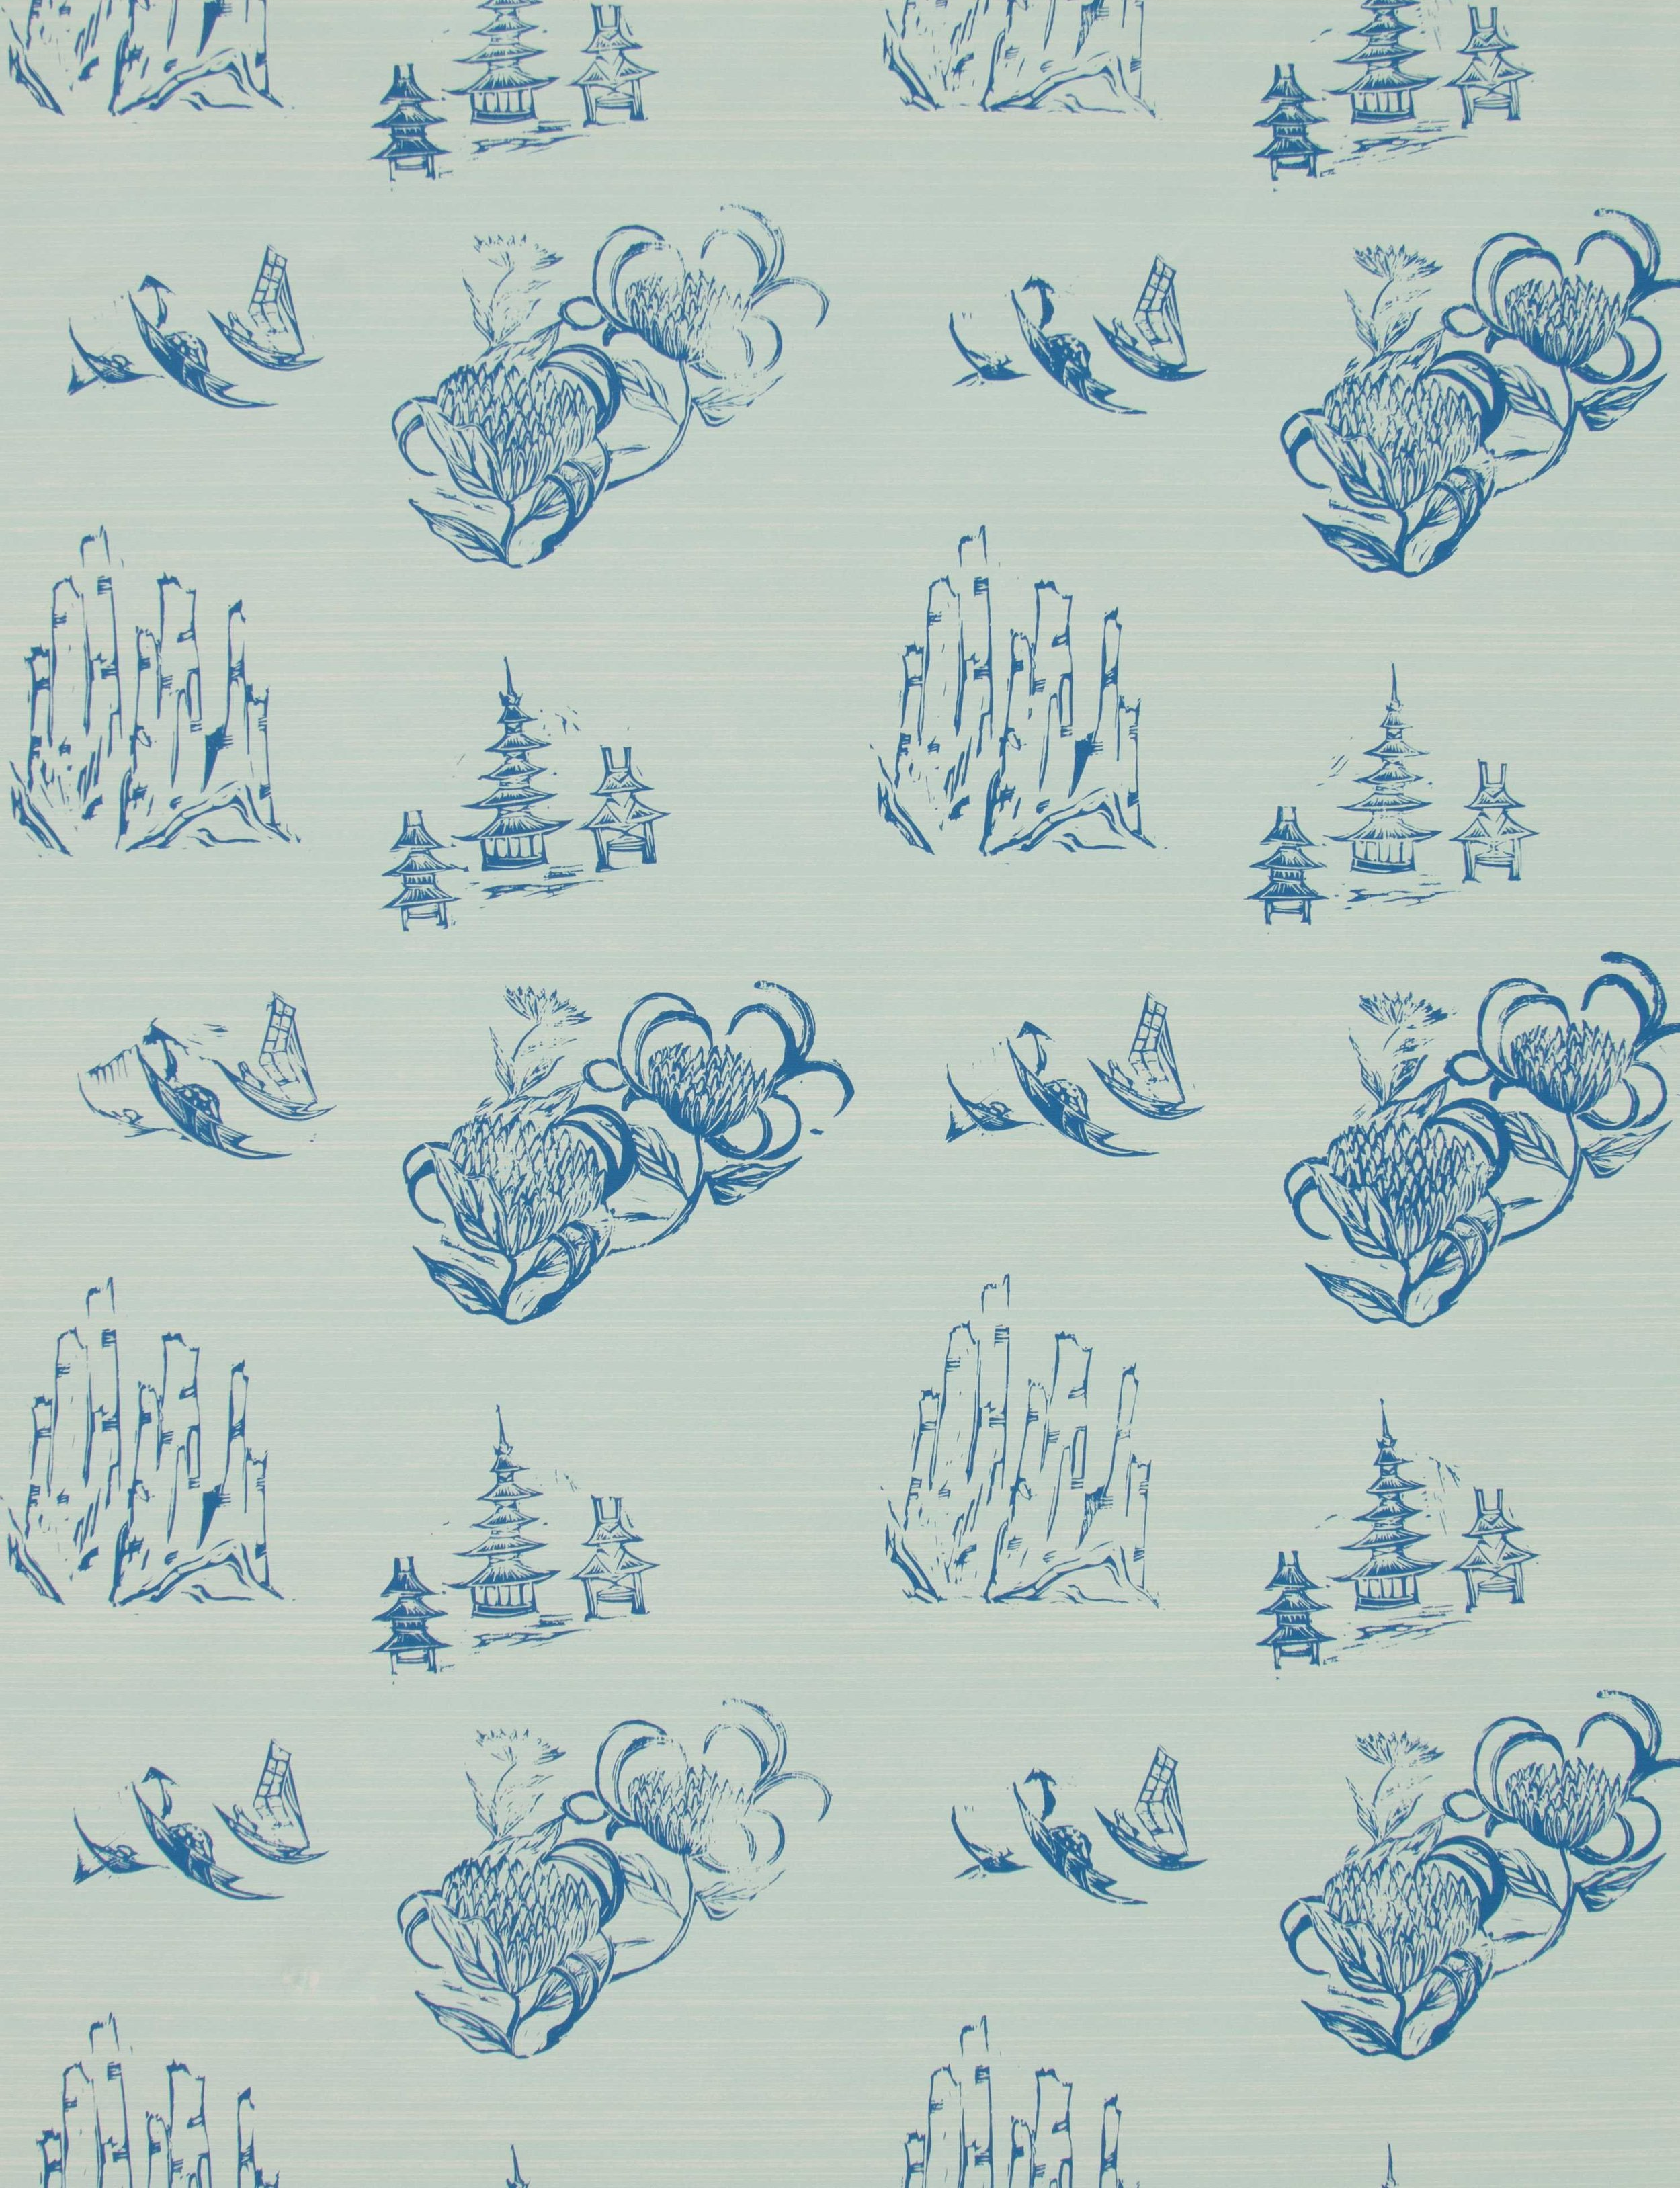 Toile in Mint, SL110-02